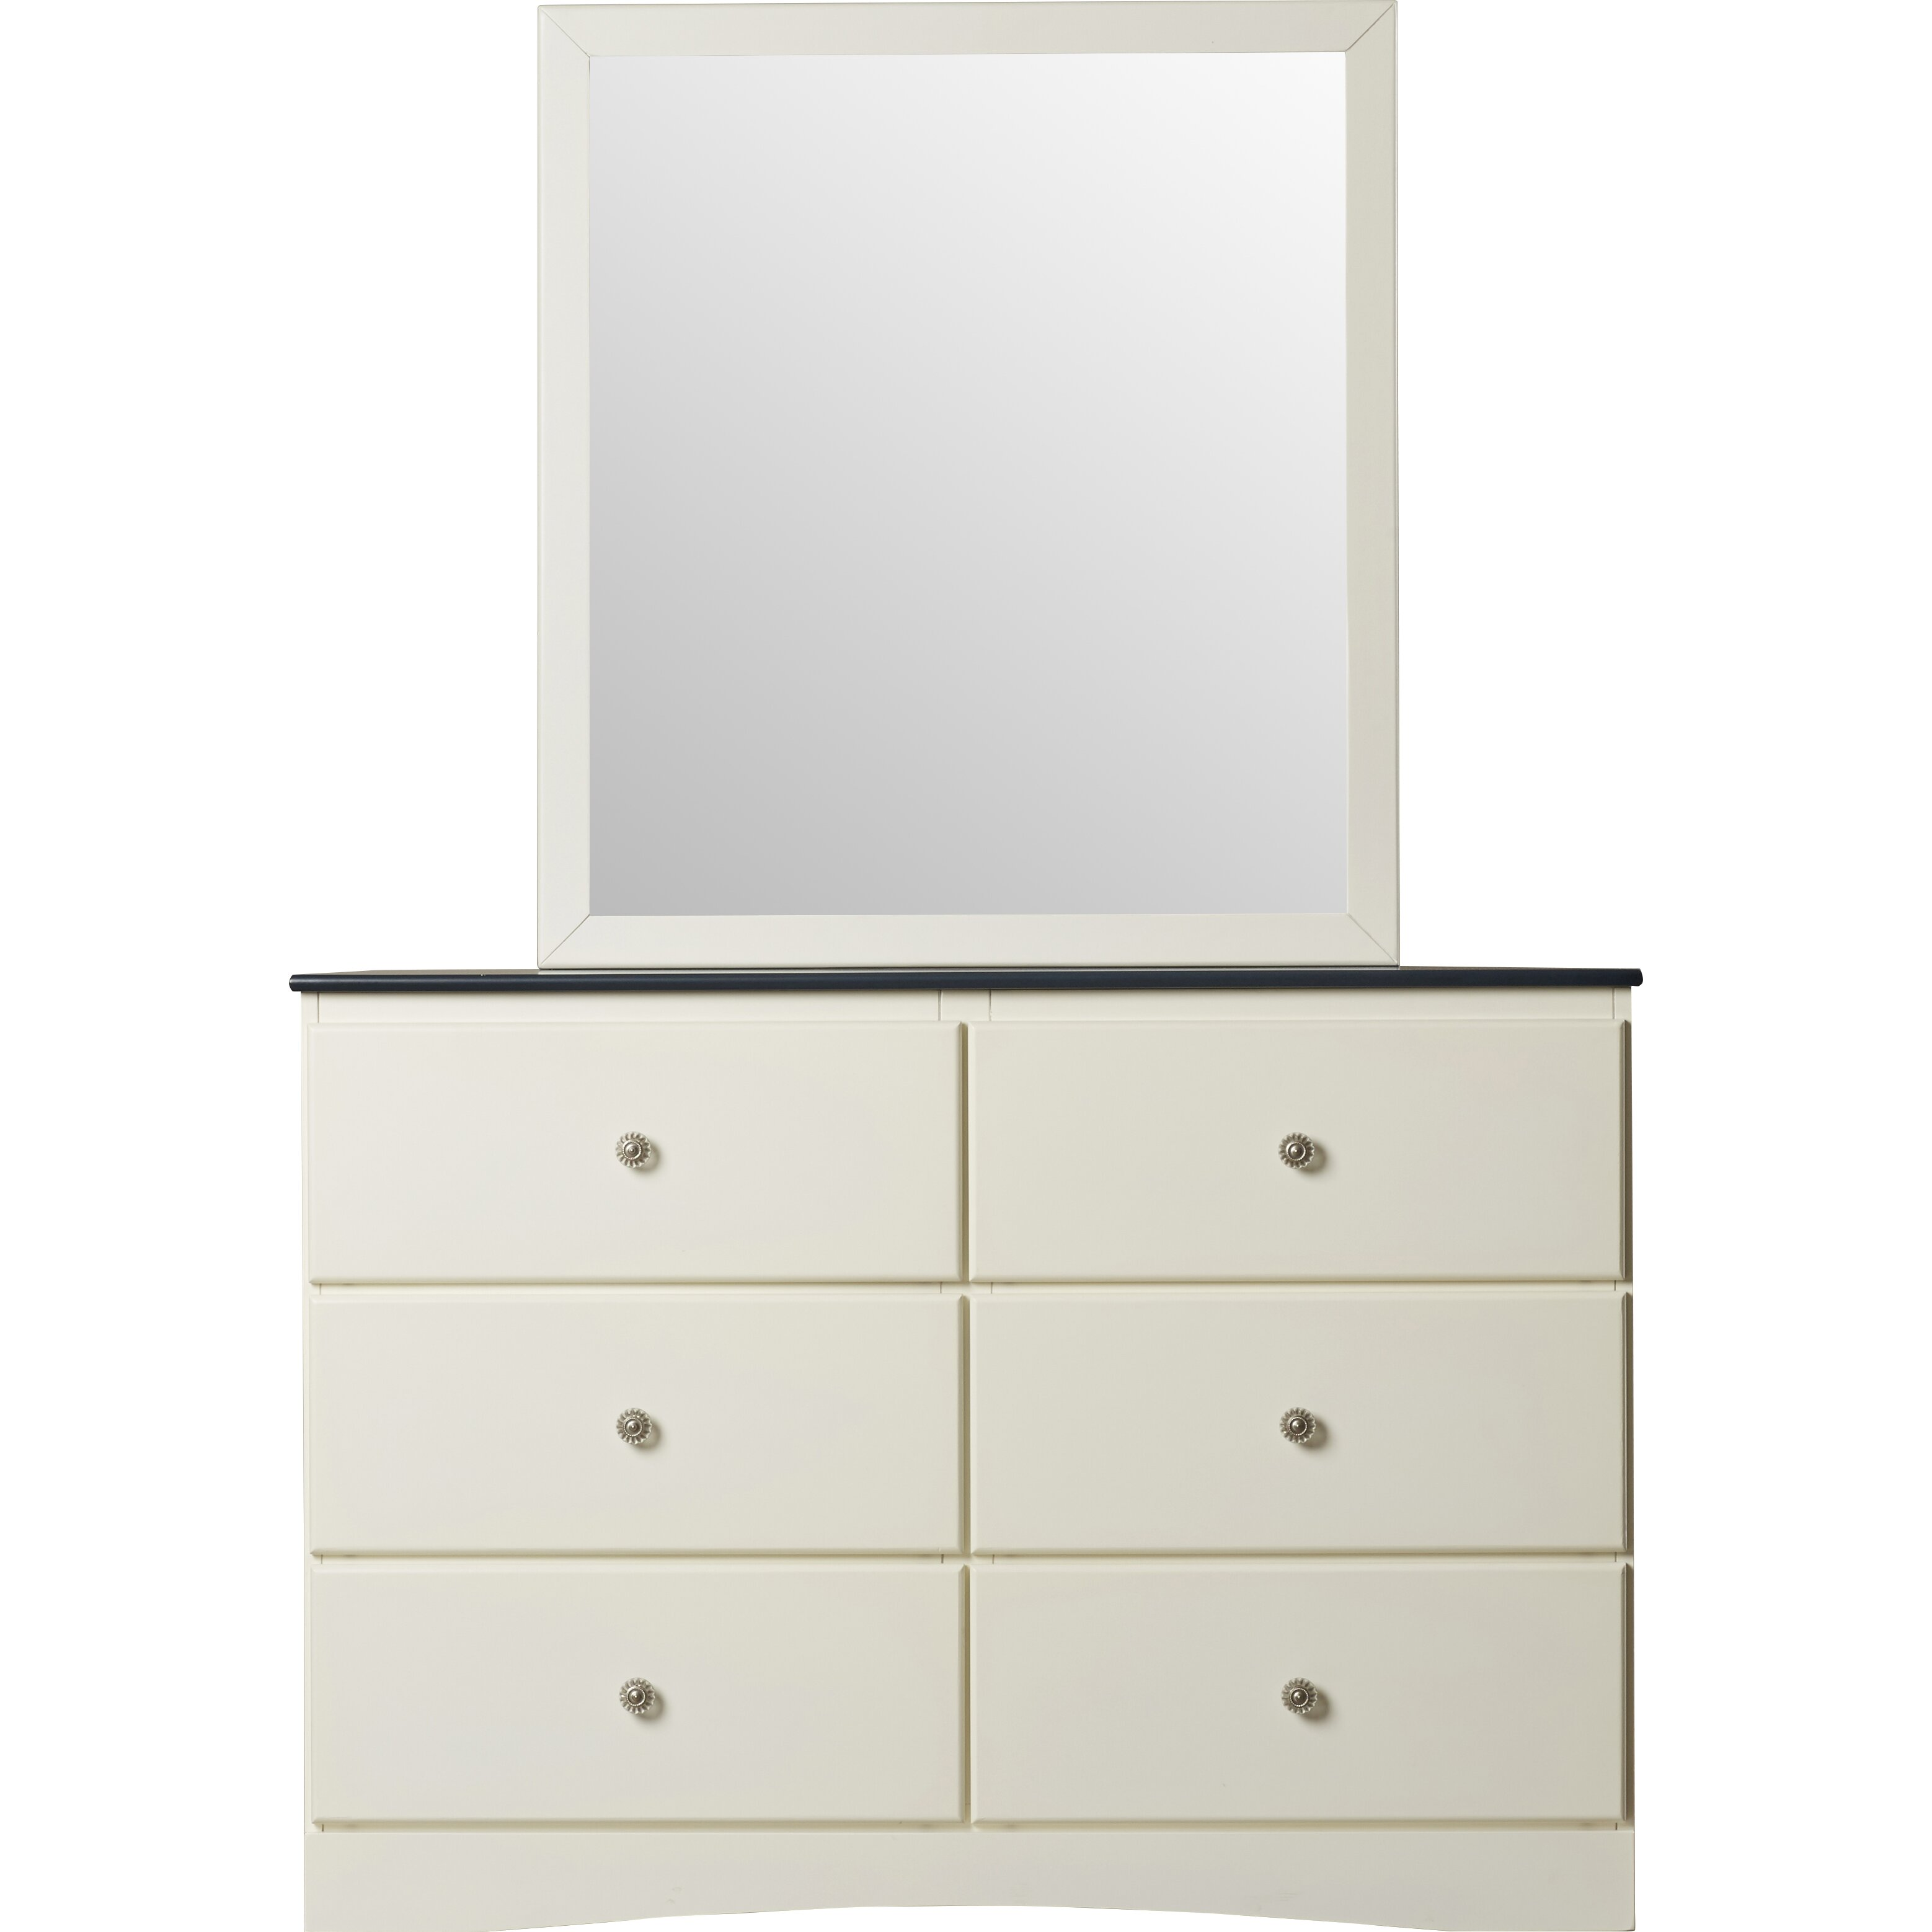 Zoomie kids cristina 6 drawer dresser with mirror for 1 door 6 drawer chest